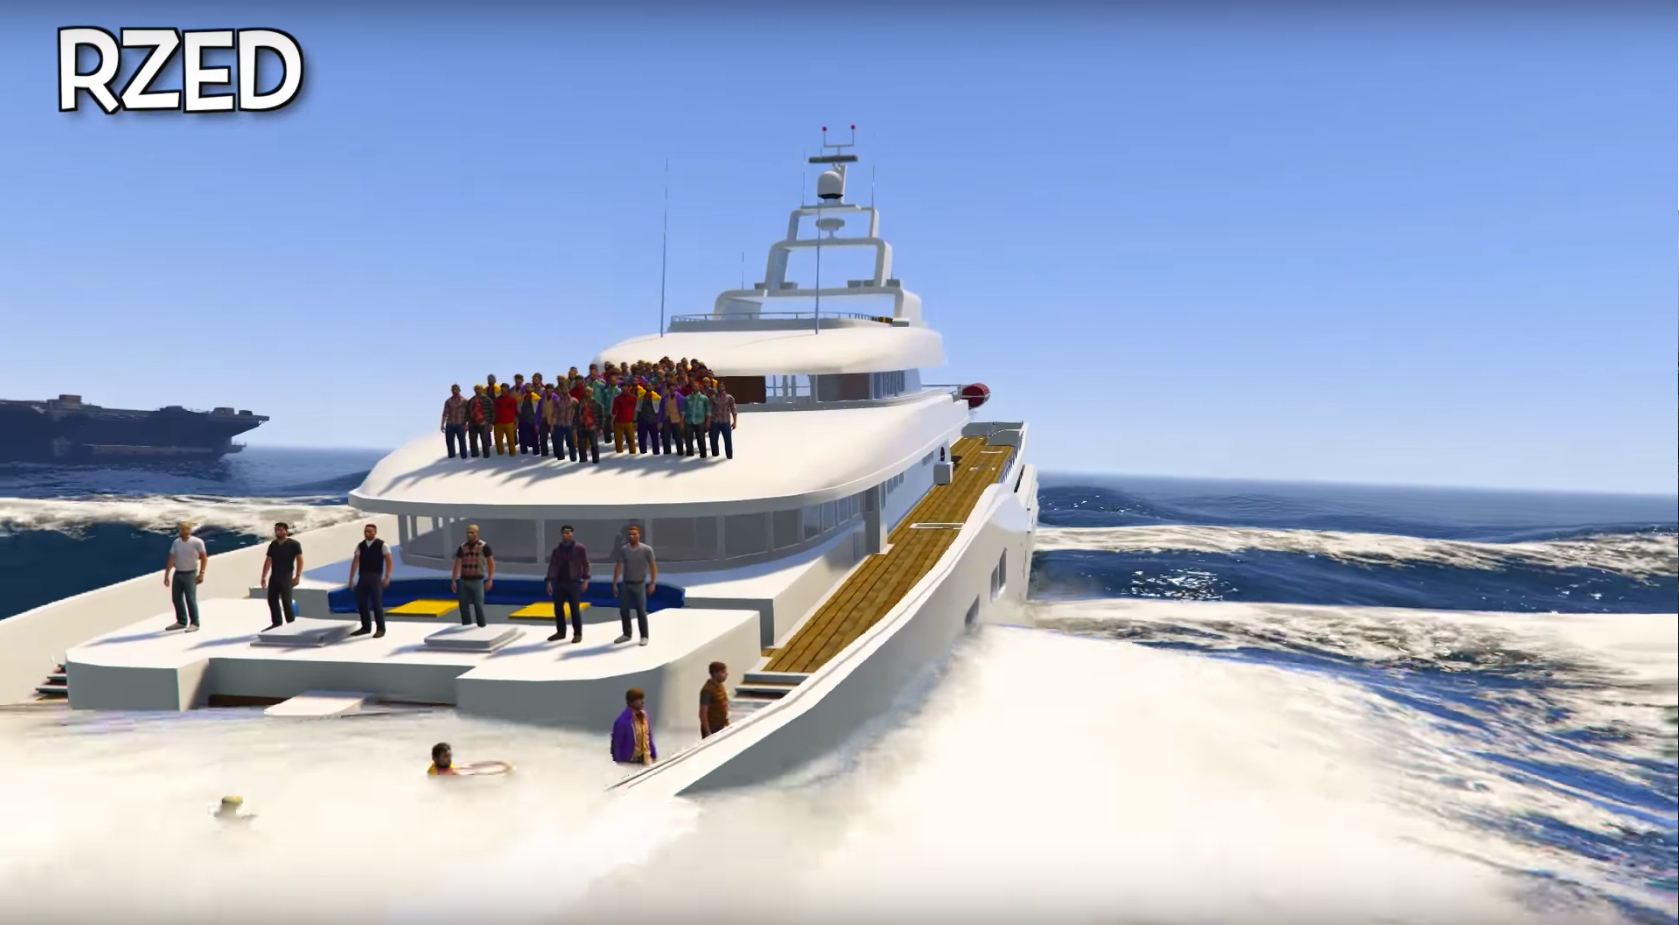 Can 100 People Sink A Yacht In